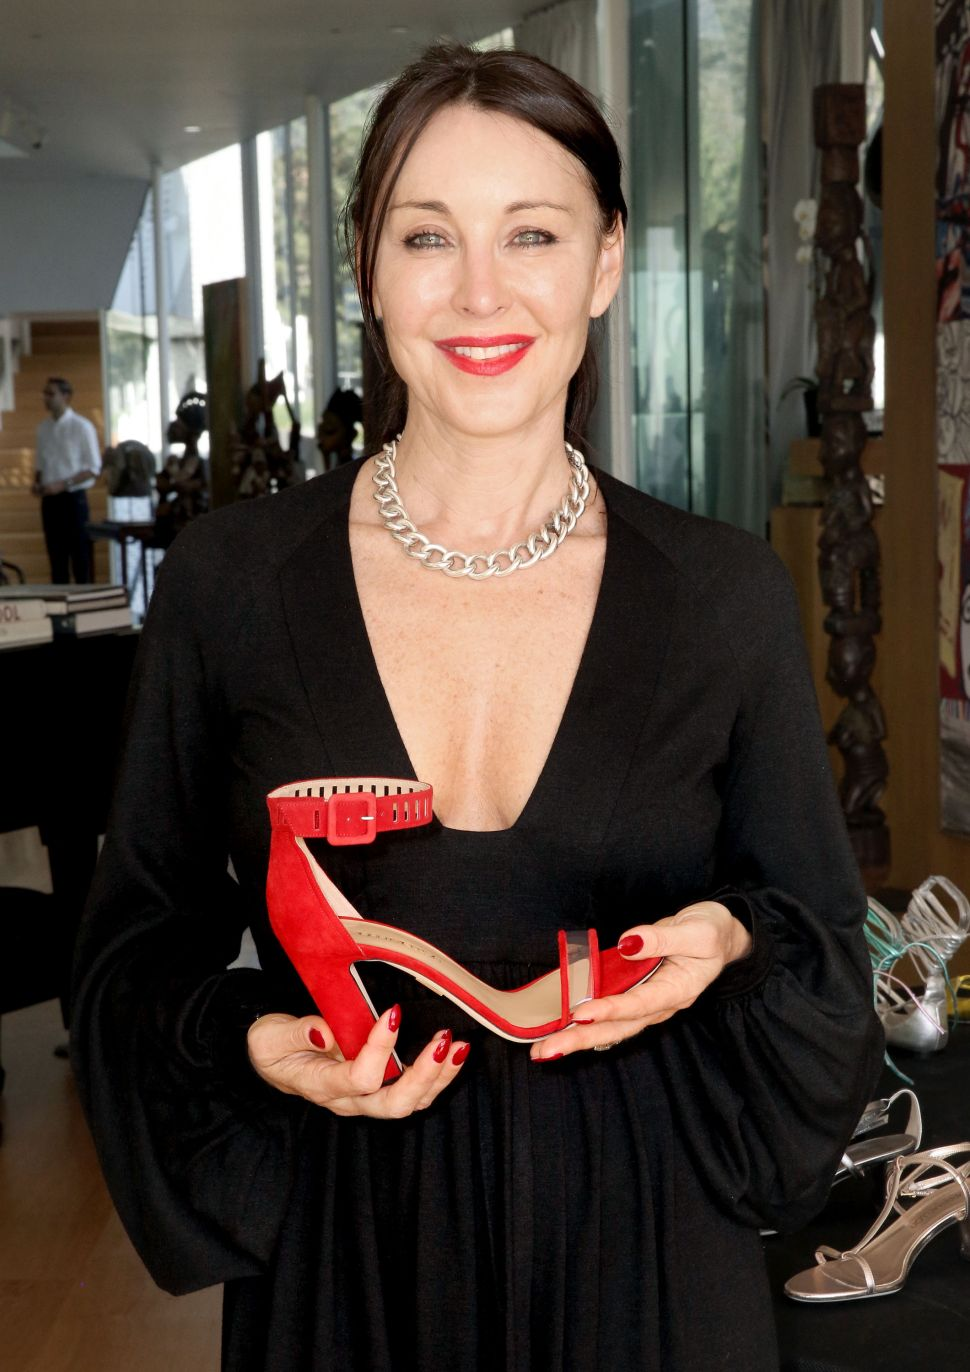 Jimmy Choo Co-Founder Tamara Mellon Decides UES Penthouse Is Worth $85,000/Month